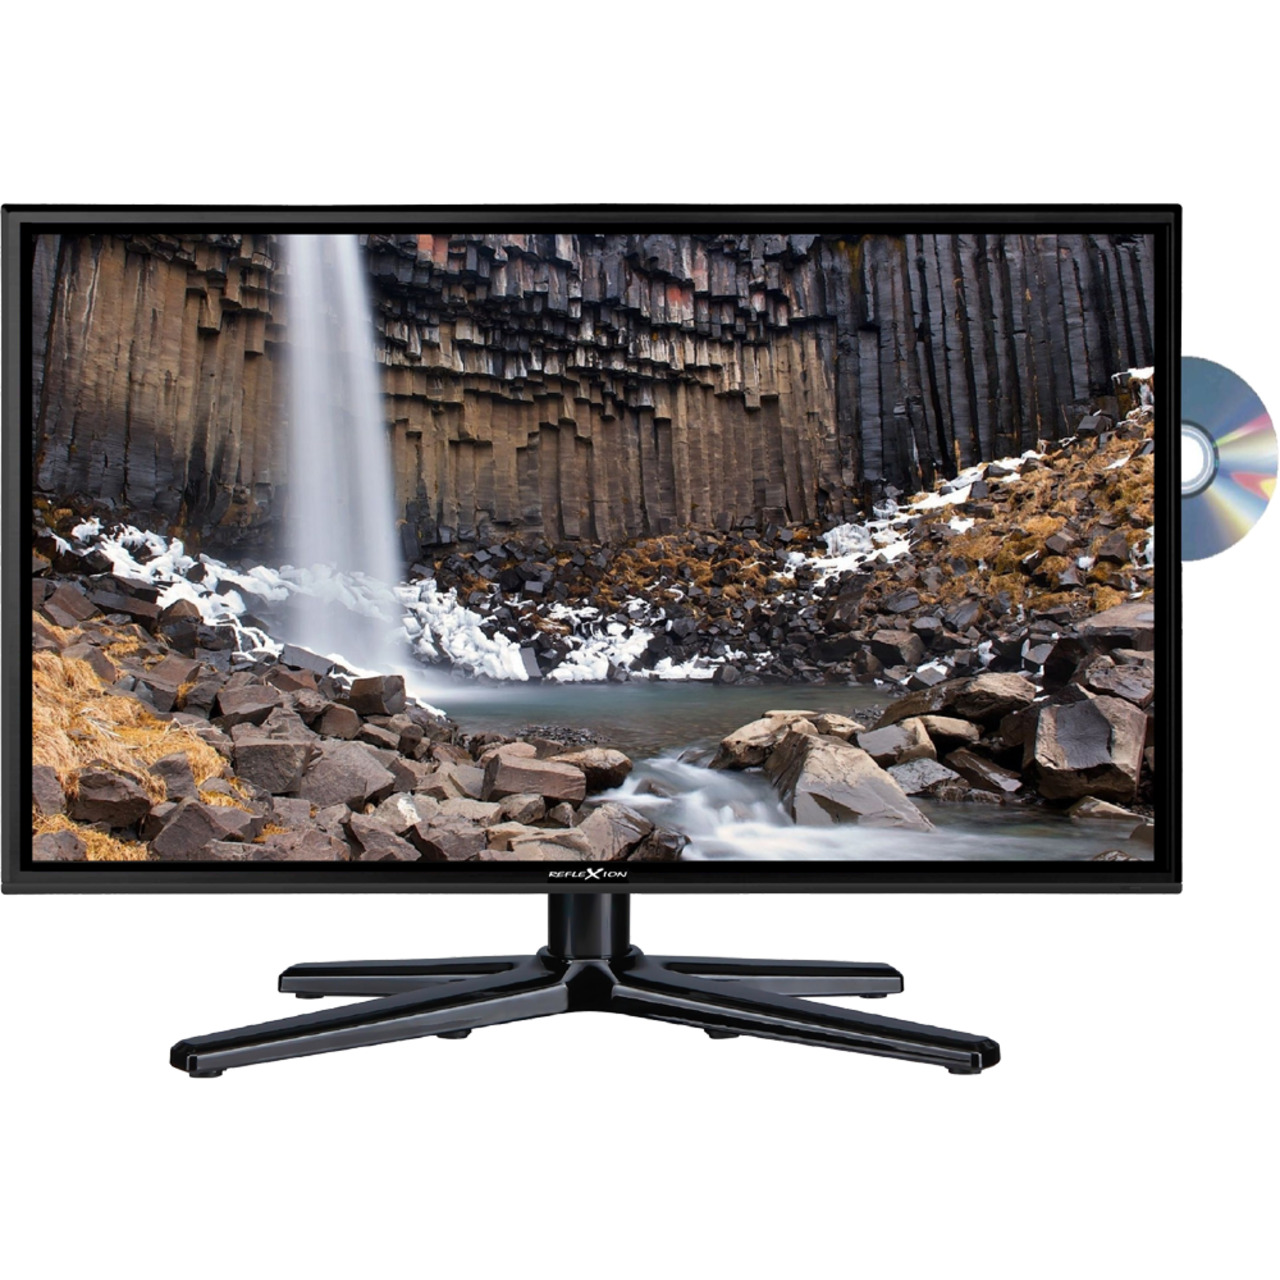 Reflexion 5-in-1-LED-TV LDDW240- 60 cm (23-6)- DVD-Player- DVB-S-S2-C-T-T2- H-265-HEVC- 1080p